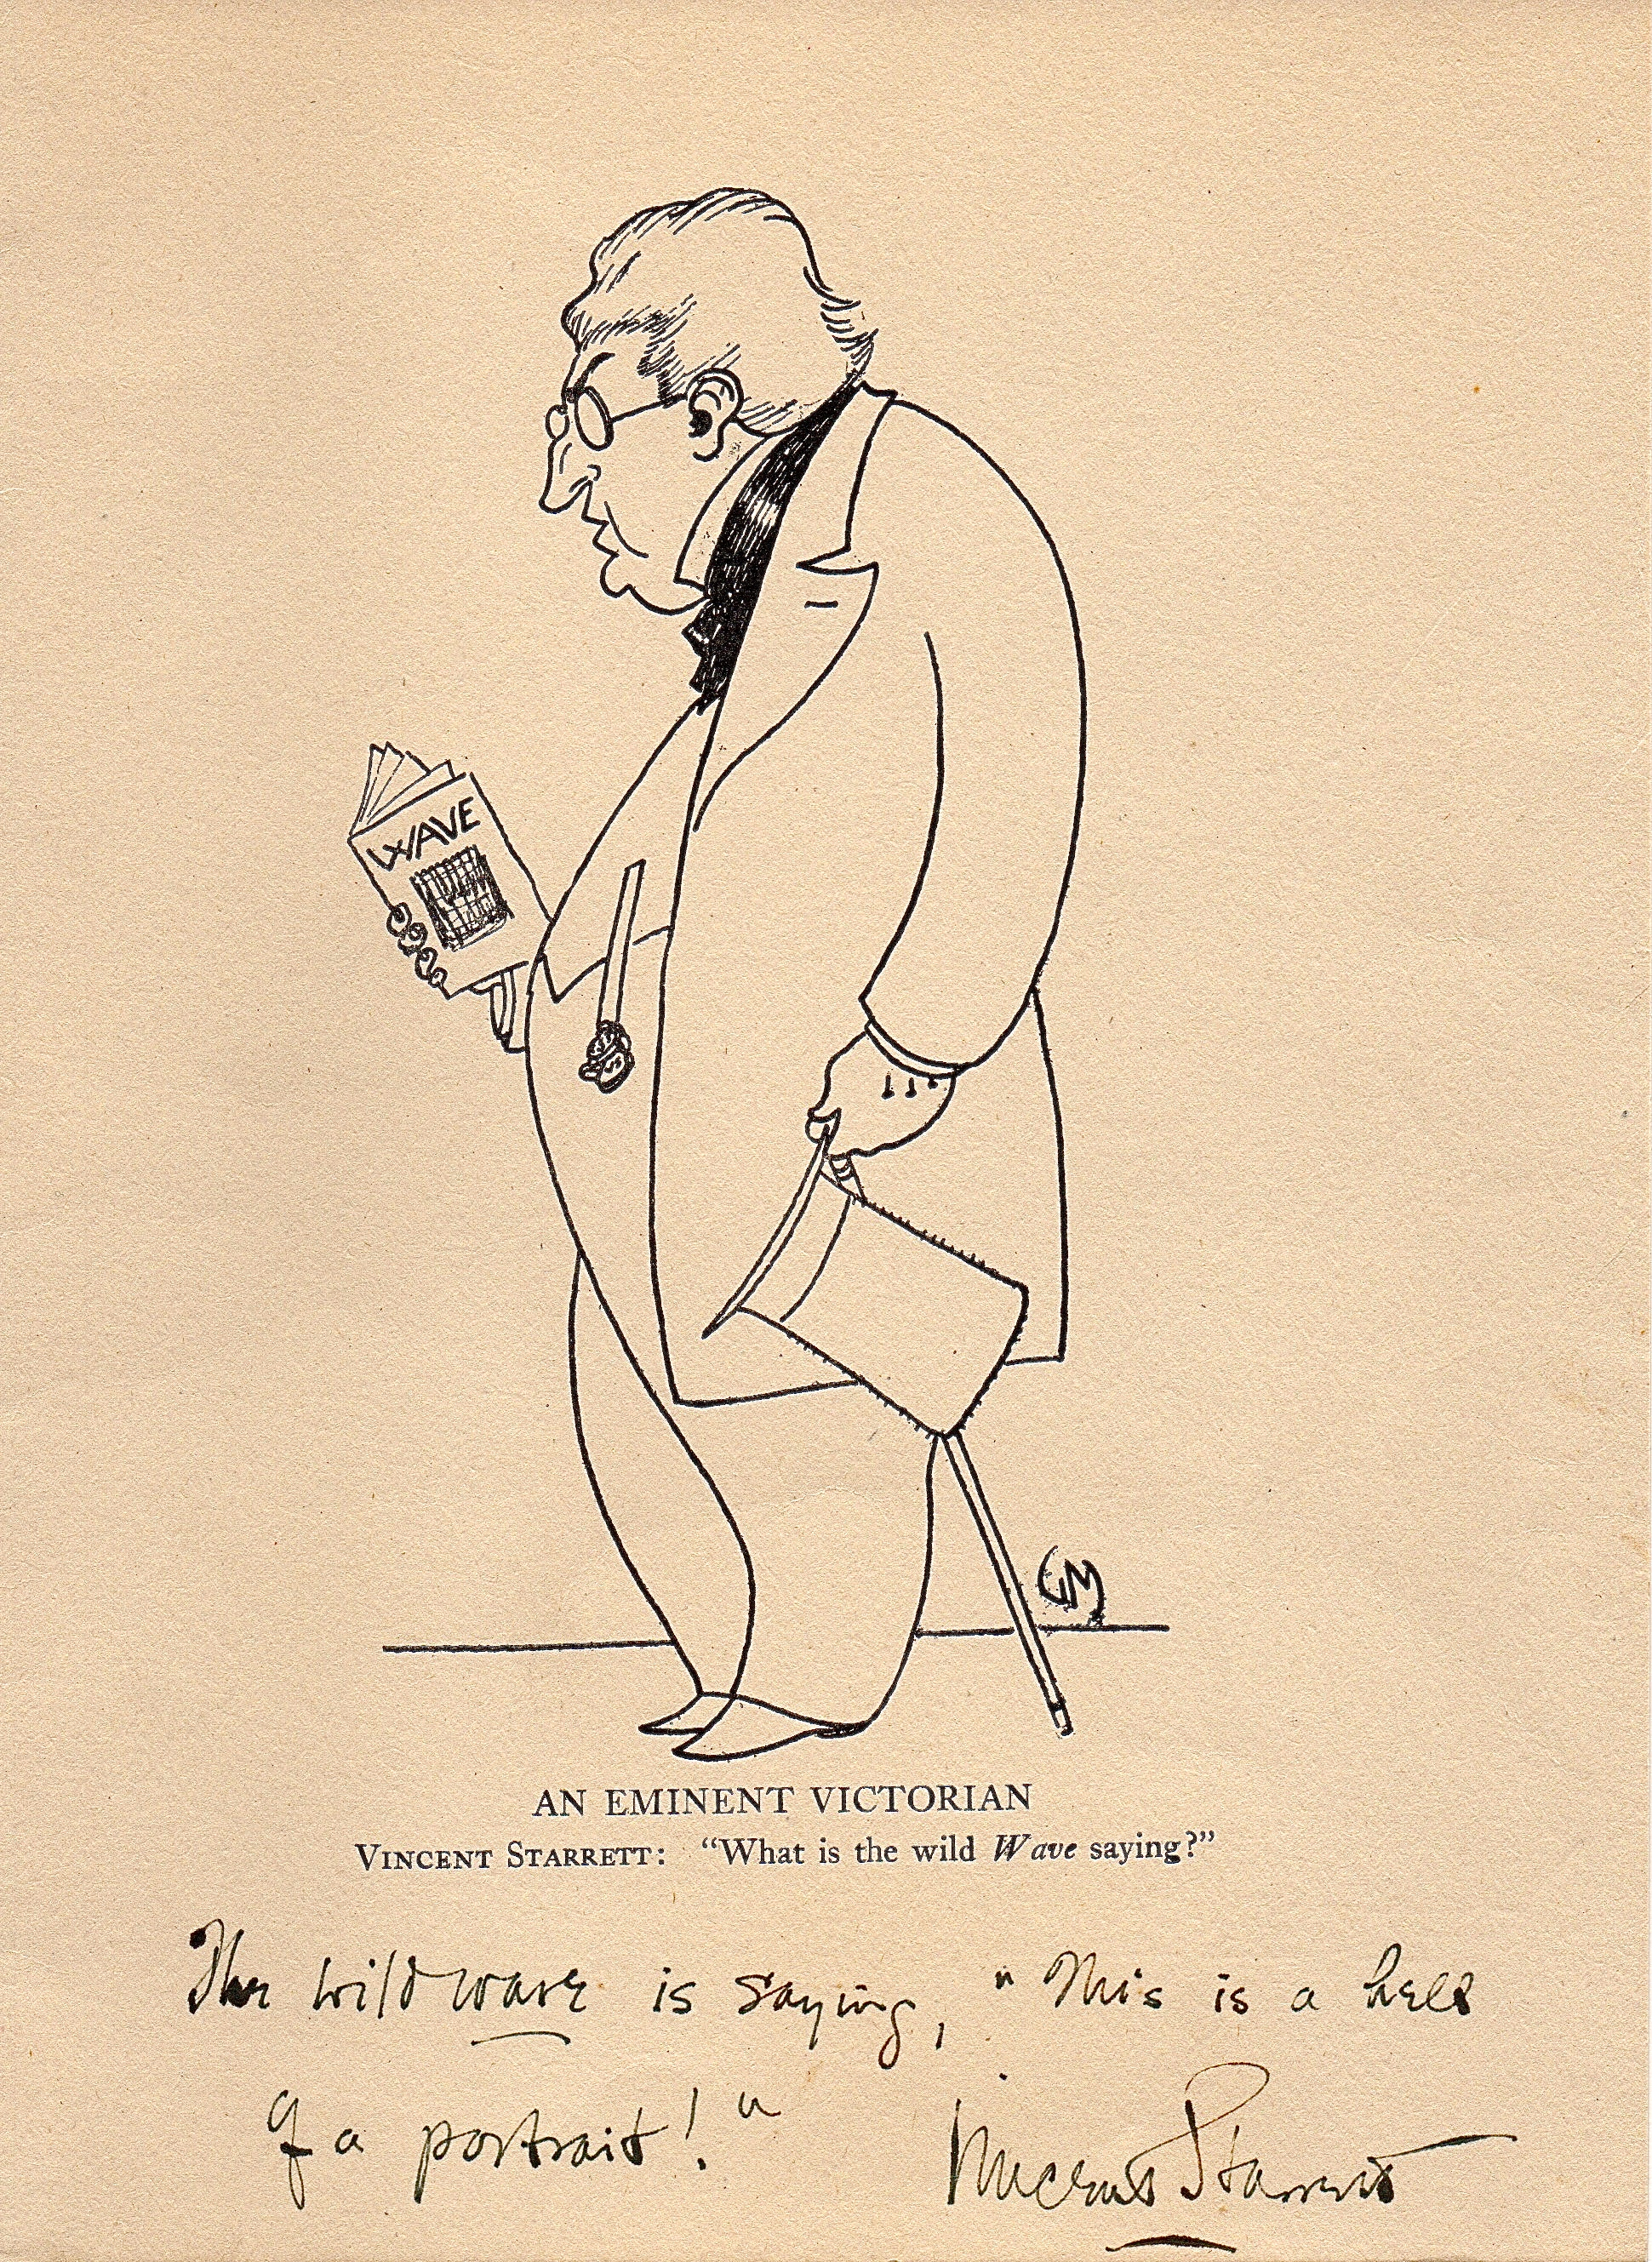 Starrett loved being editor of The Wave. Here is a rare copy of Gene Markey's illustration of Starrett holding a copy of the magazine, with a note by Starrett.